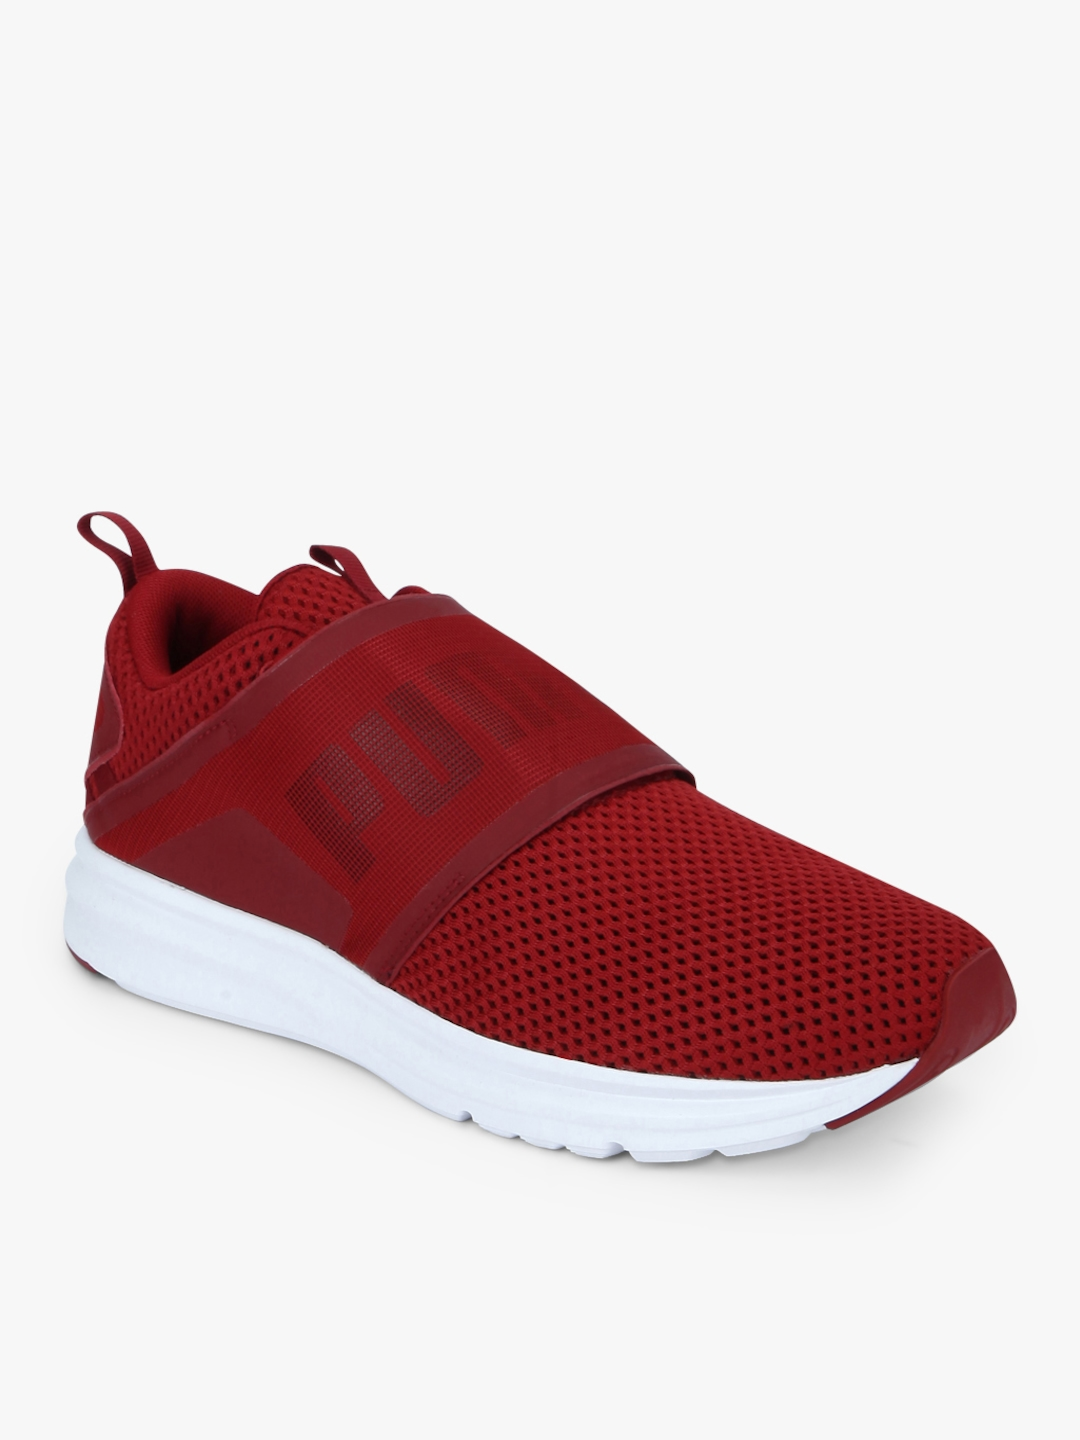 823b01f456 Buy Enzo Strap Mesh Red Sneakers - Casual Shoes for Men 7633855 | Myntra